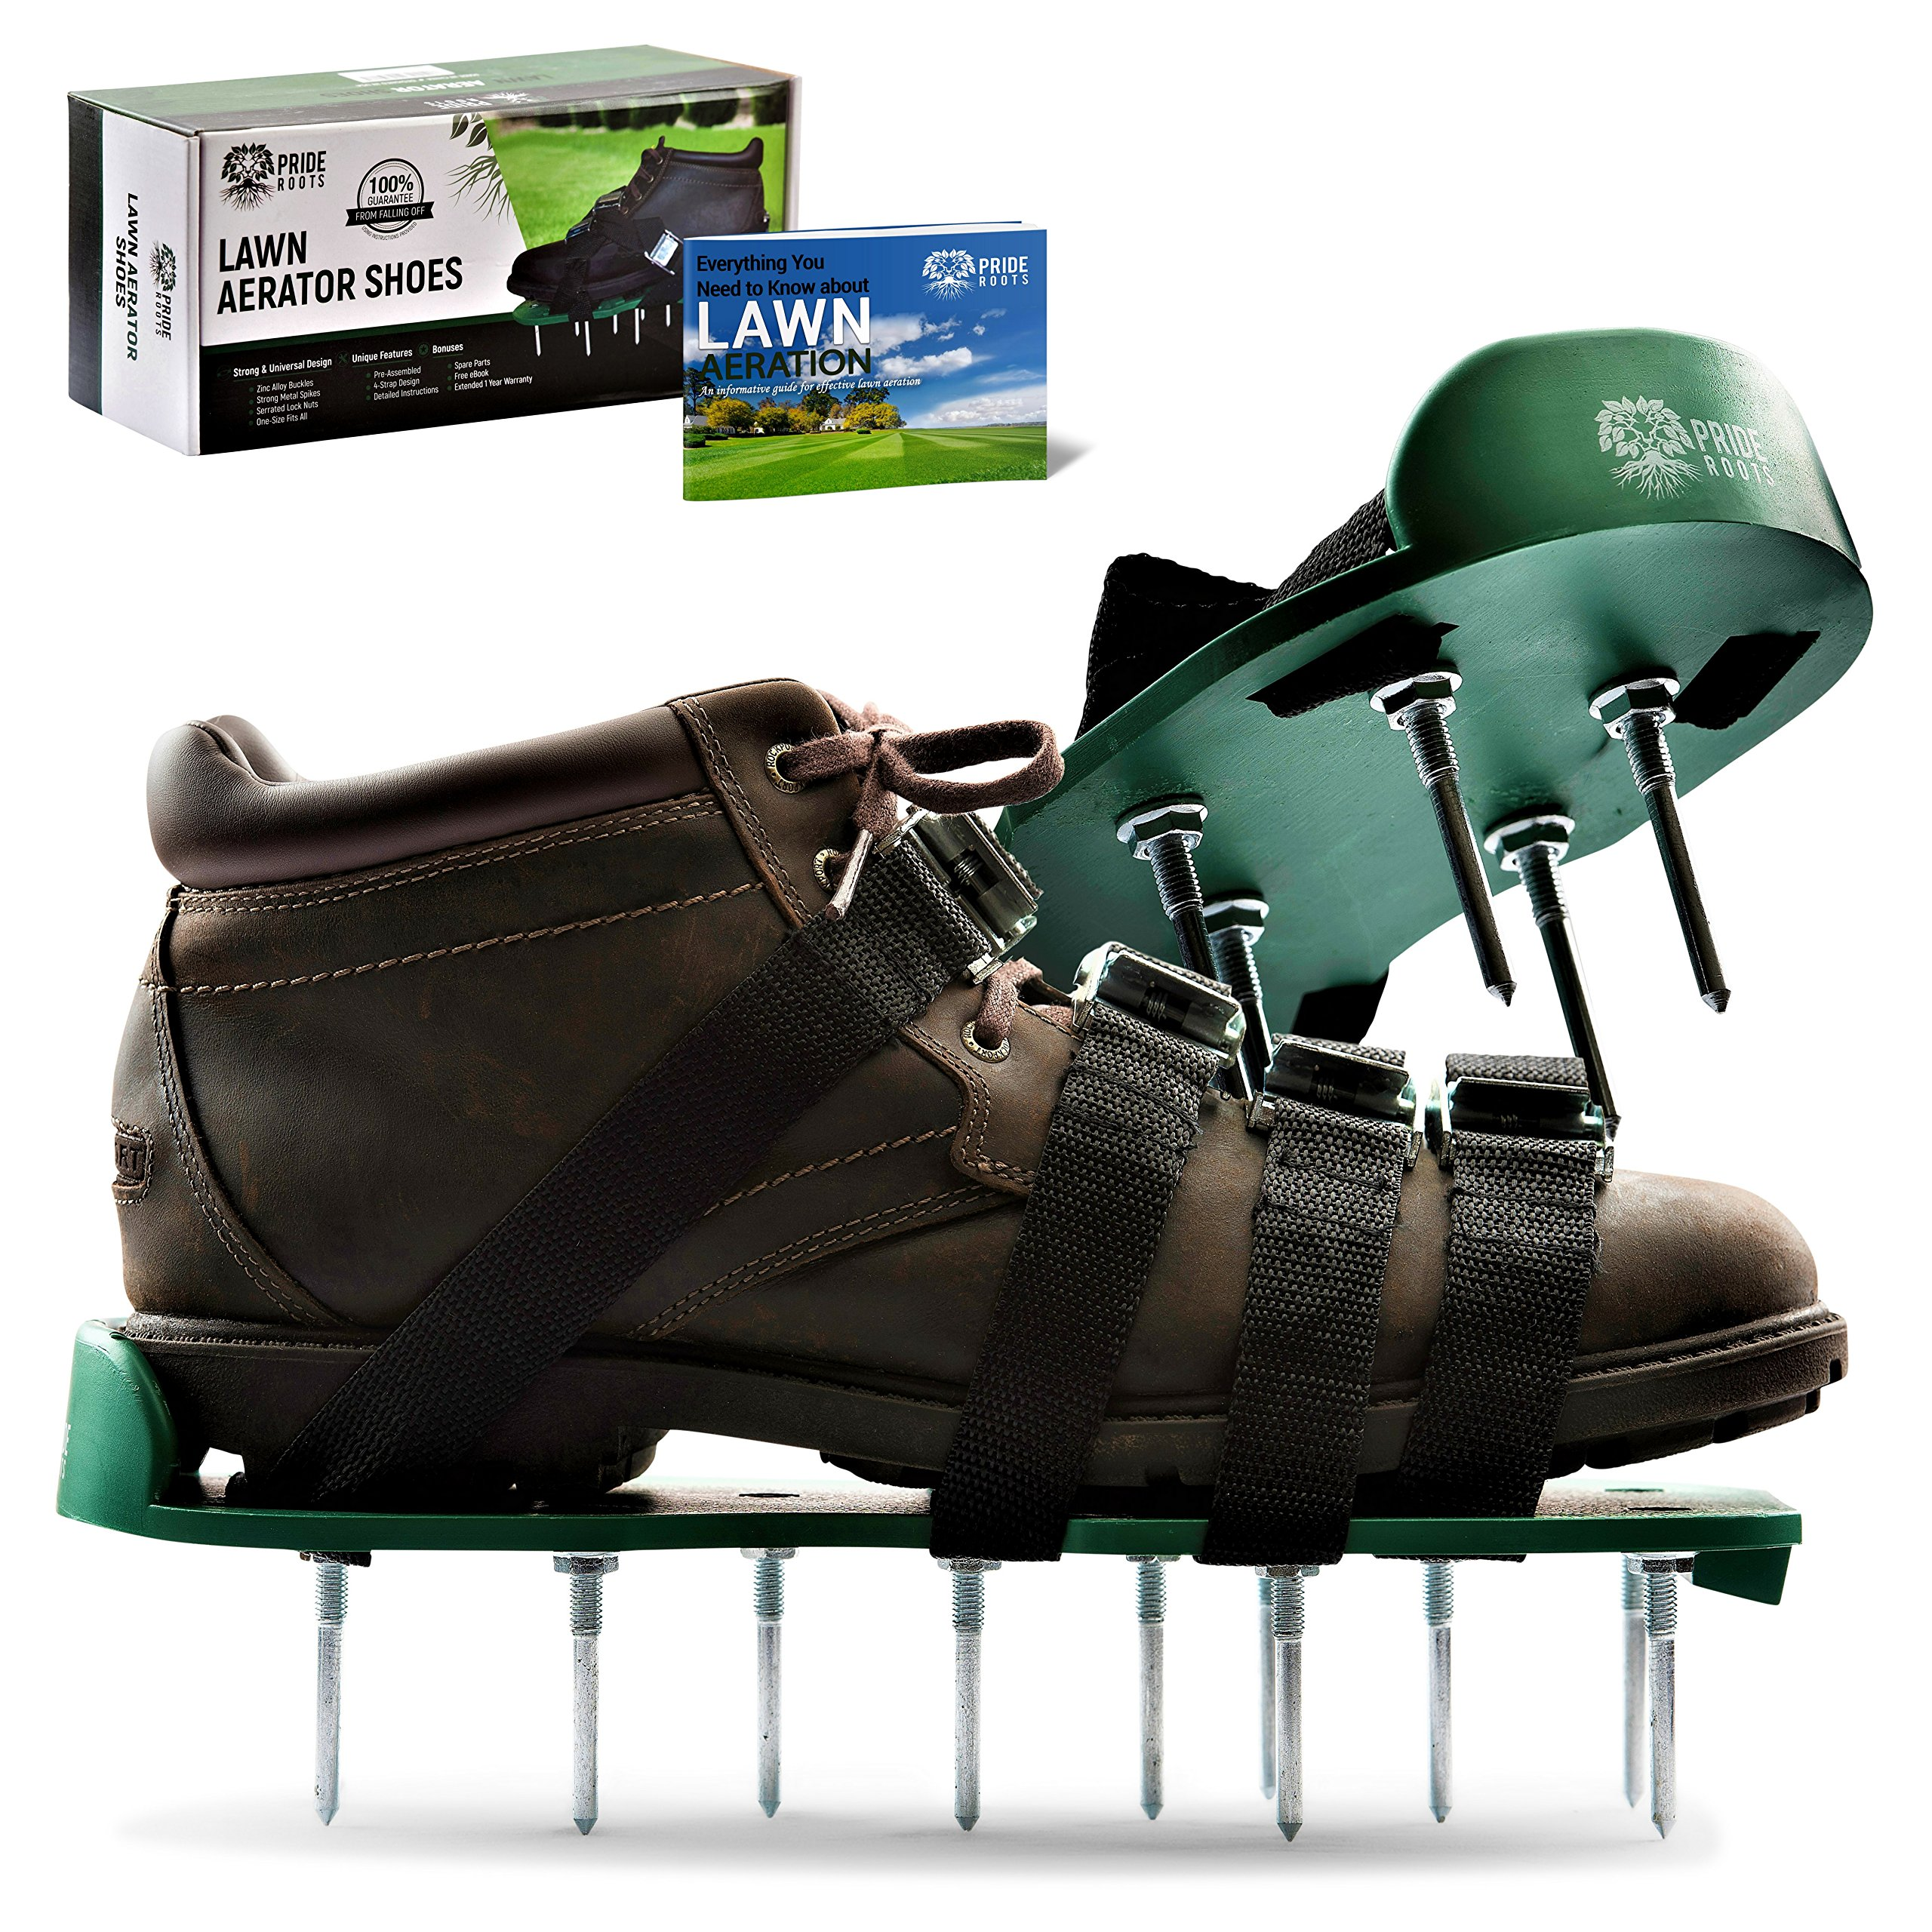 Pride Roots Pre-Assembled Lawn Aerator Shoes - Effective Tool for Aerating Yard Soil | Premier 2.2'' Spike Sandals w/ 4 Metal Buckle Straps | Includes Lawn Aeration eBook | 1 Size Fits All